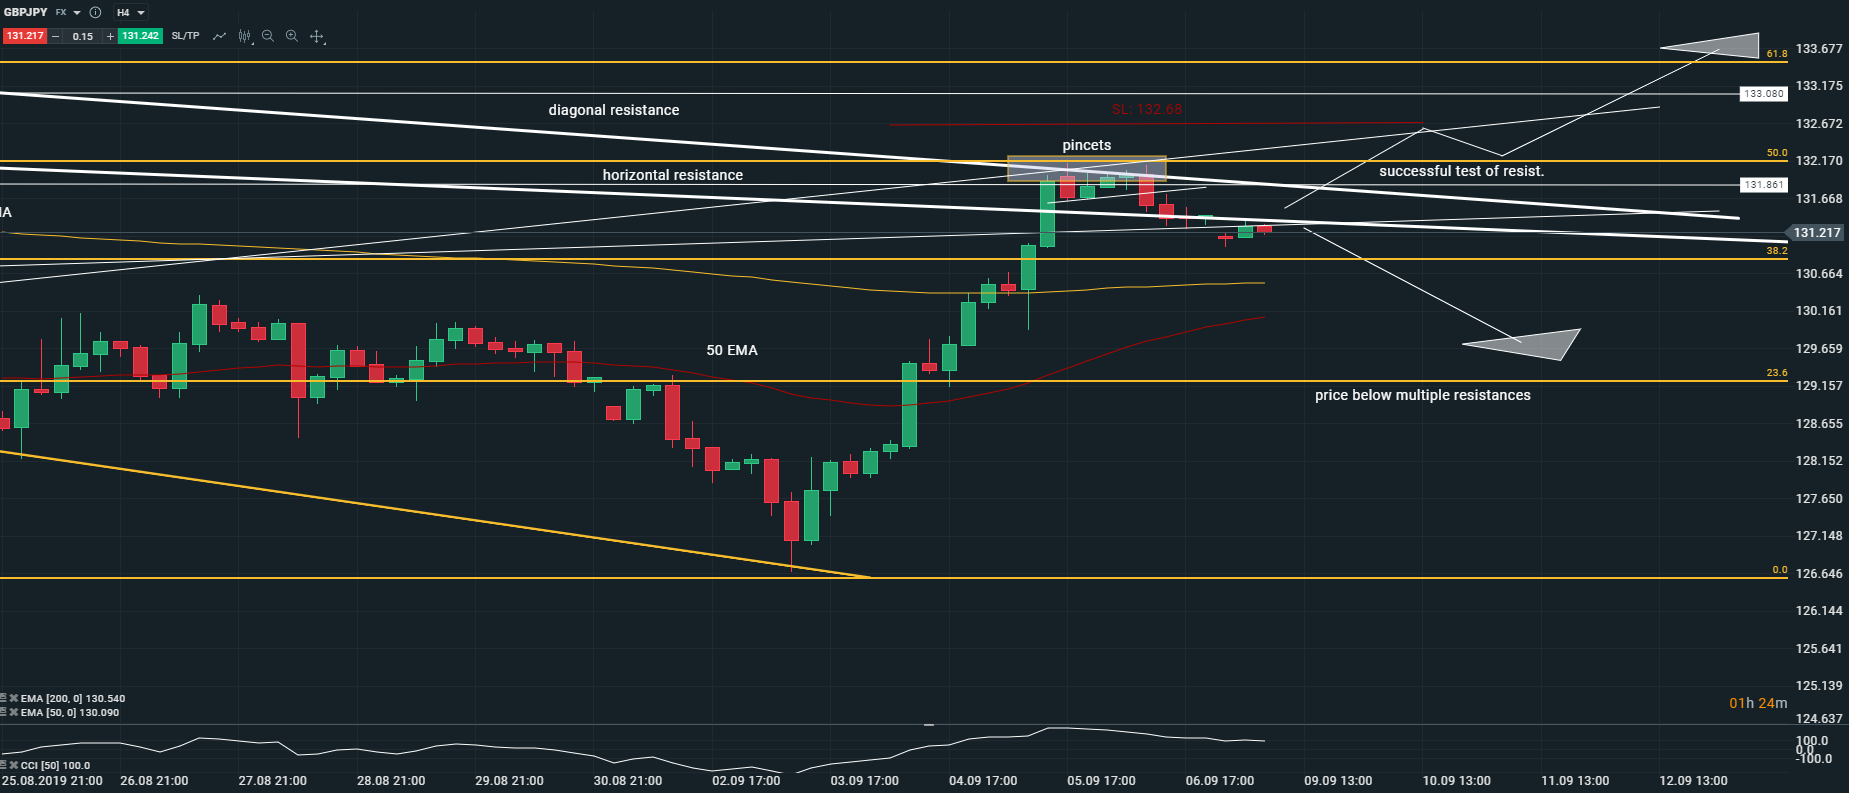 GBPJPY Zoomed